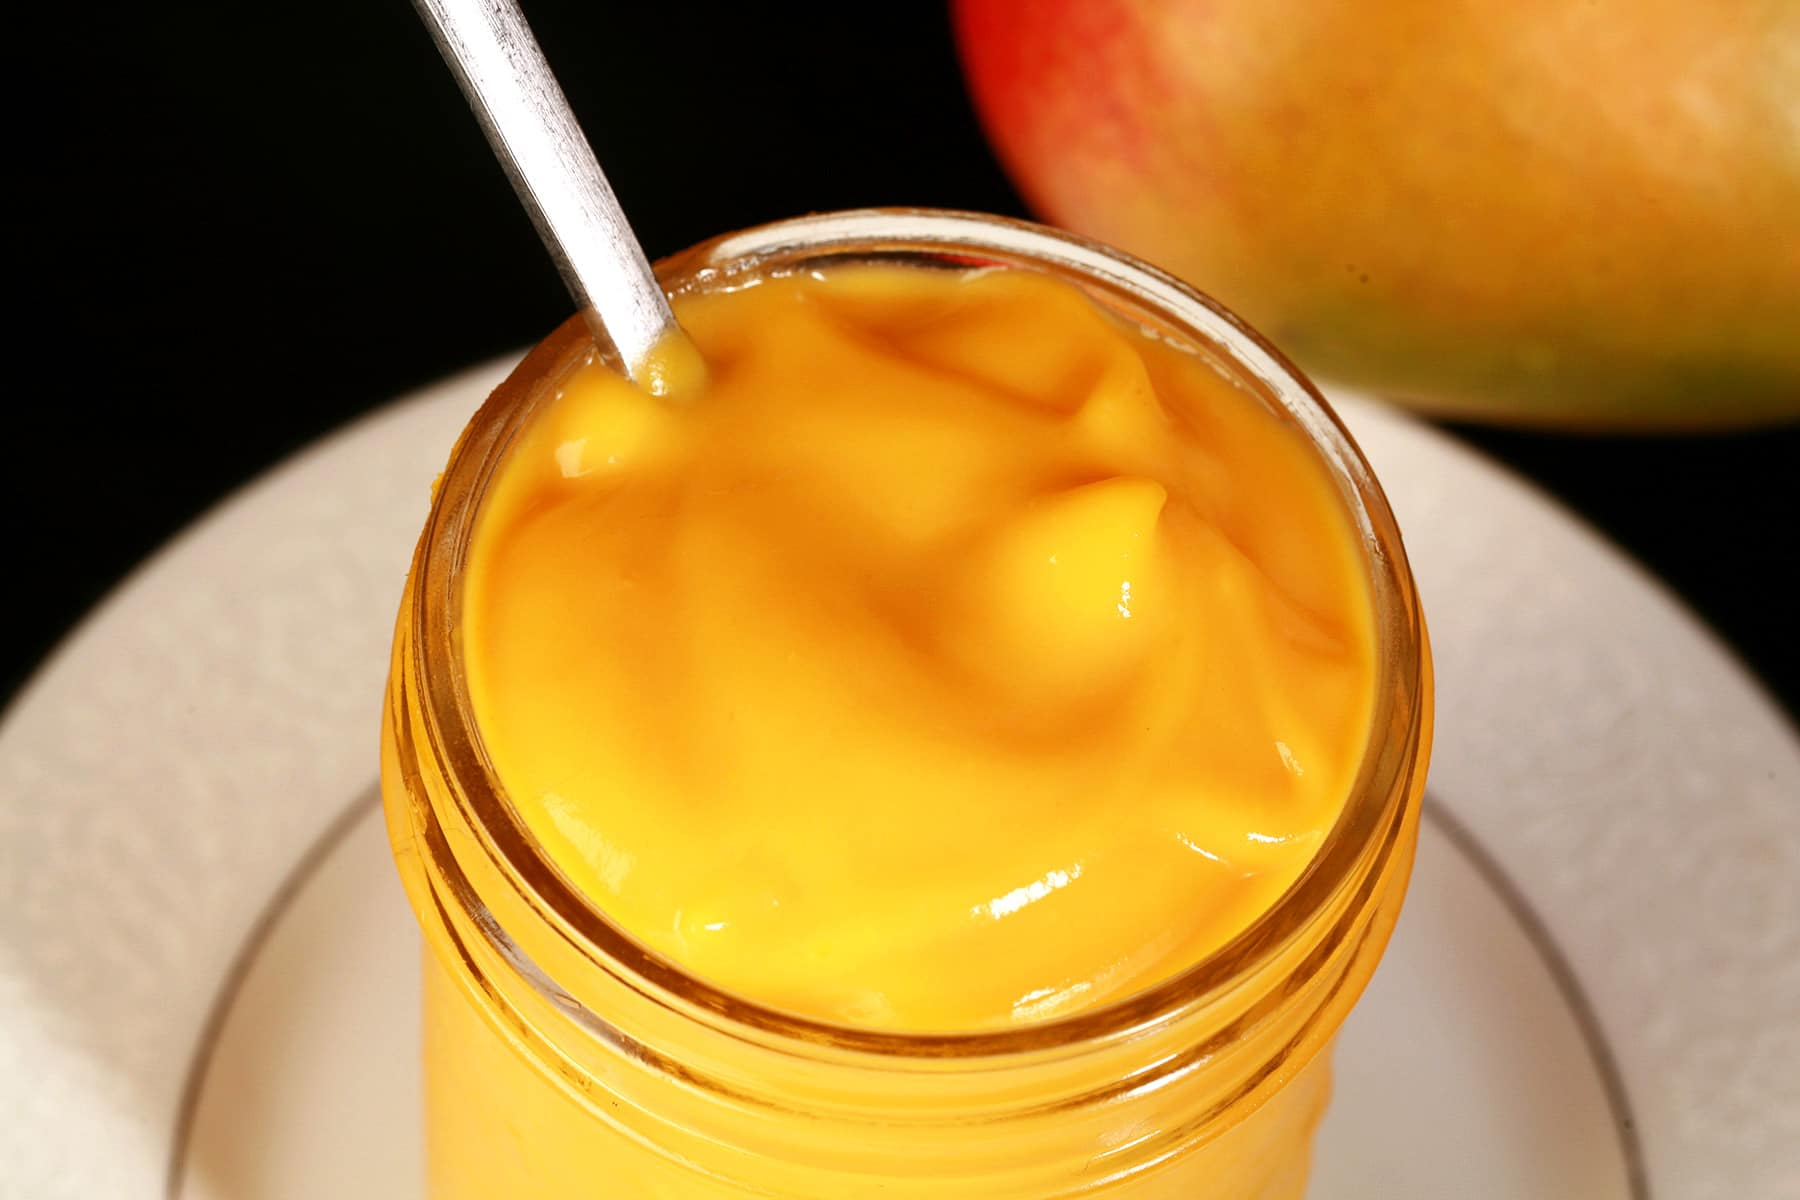 A jar of mango curd on a plate, with a whole mango behind it.